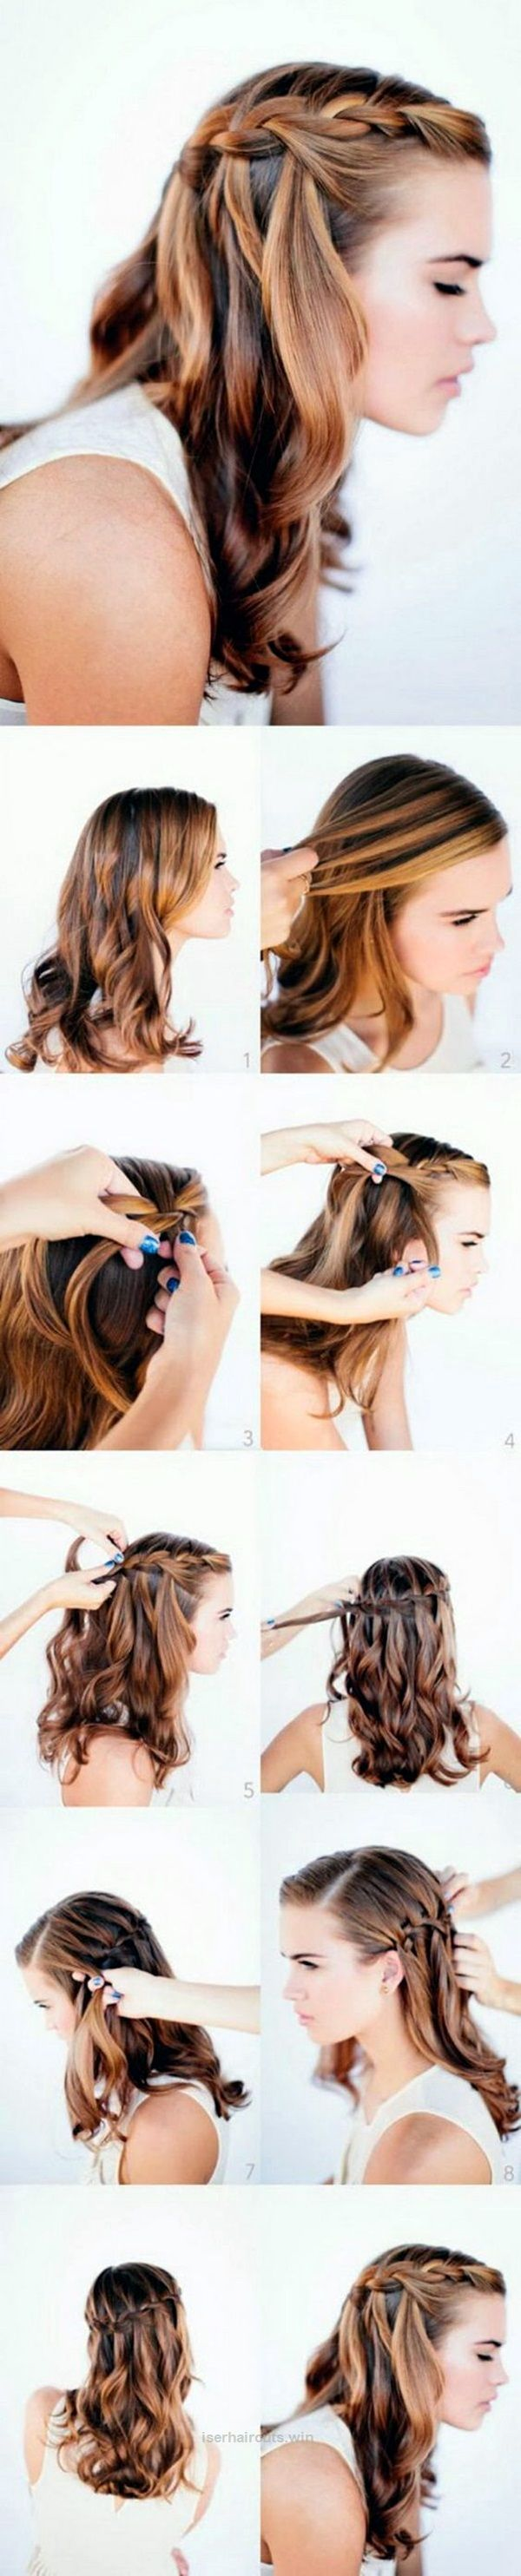 cool hairstyles school